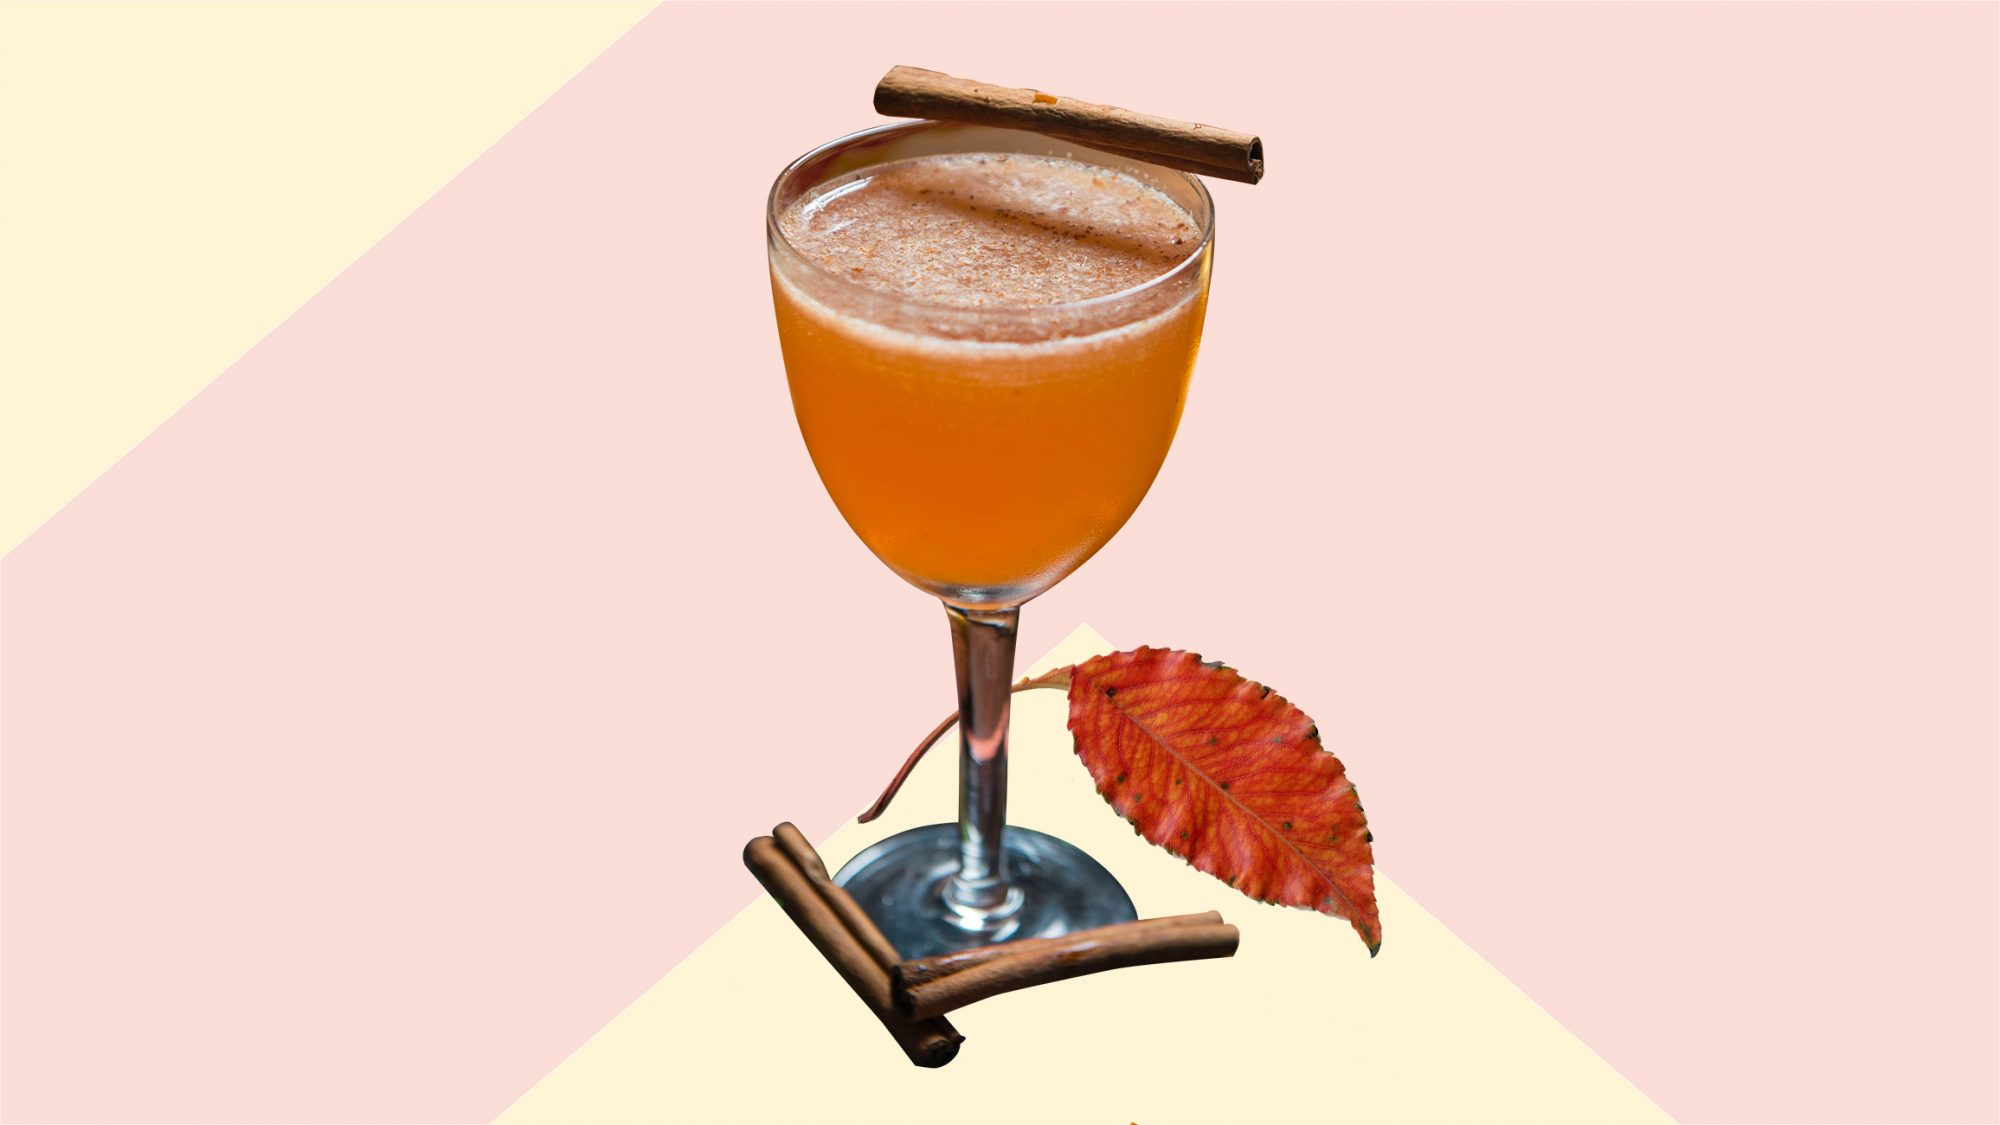 3 Festive Fall Cocktail Recipes That Celebrate the Spirit(s) of the Season